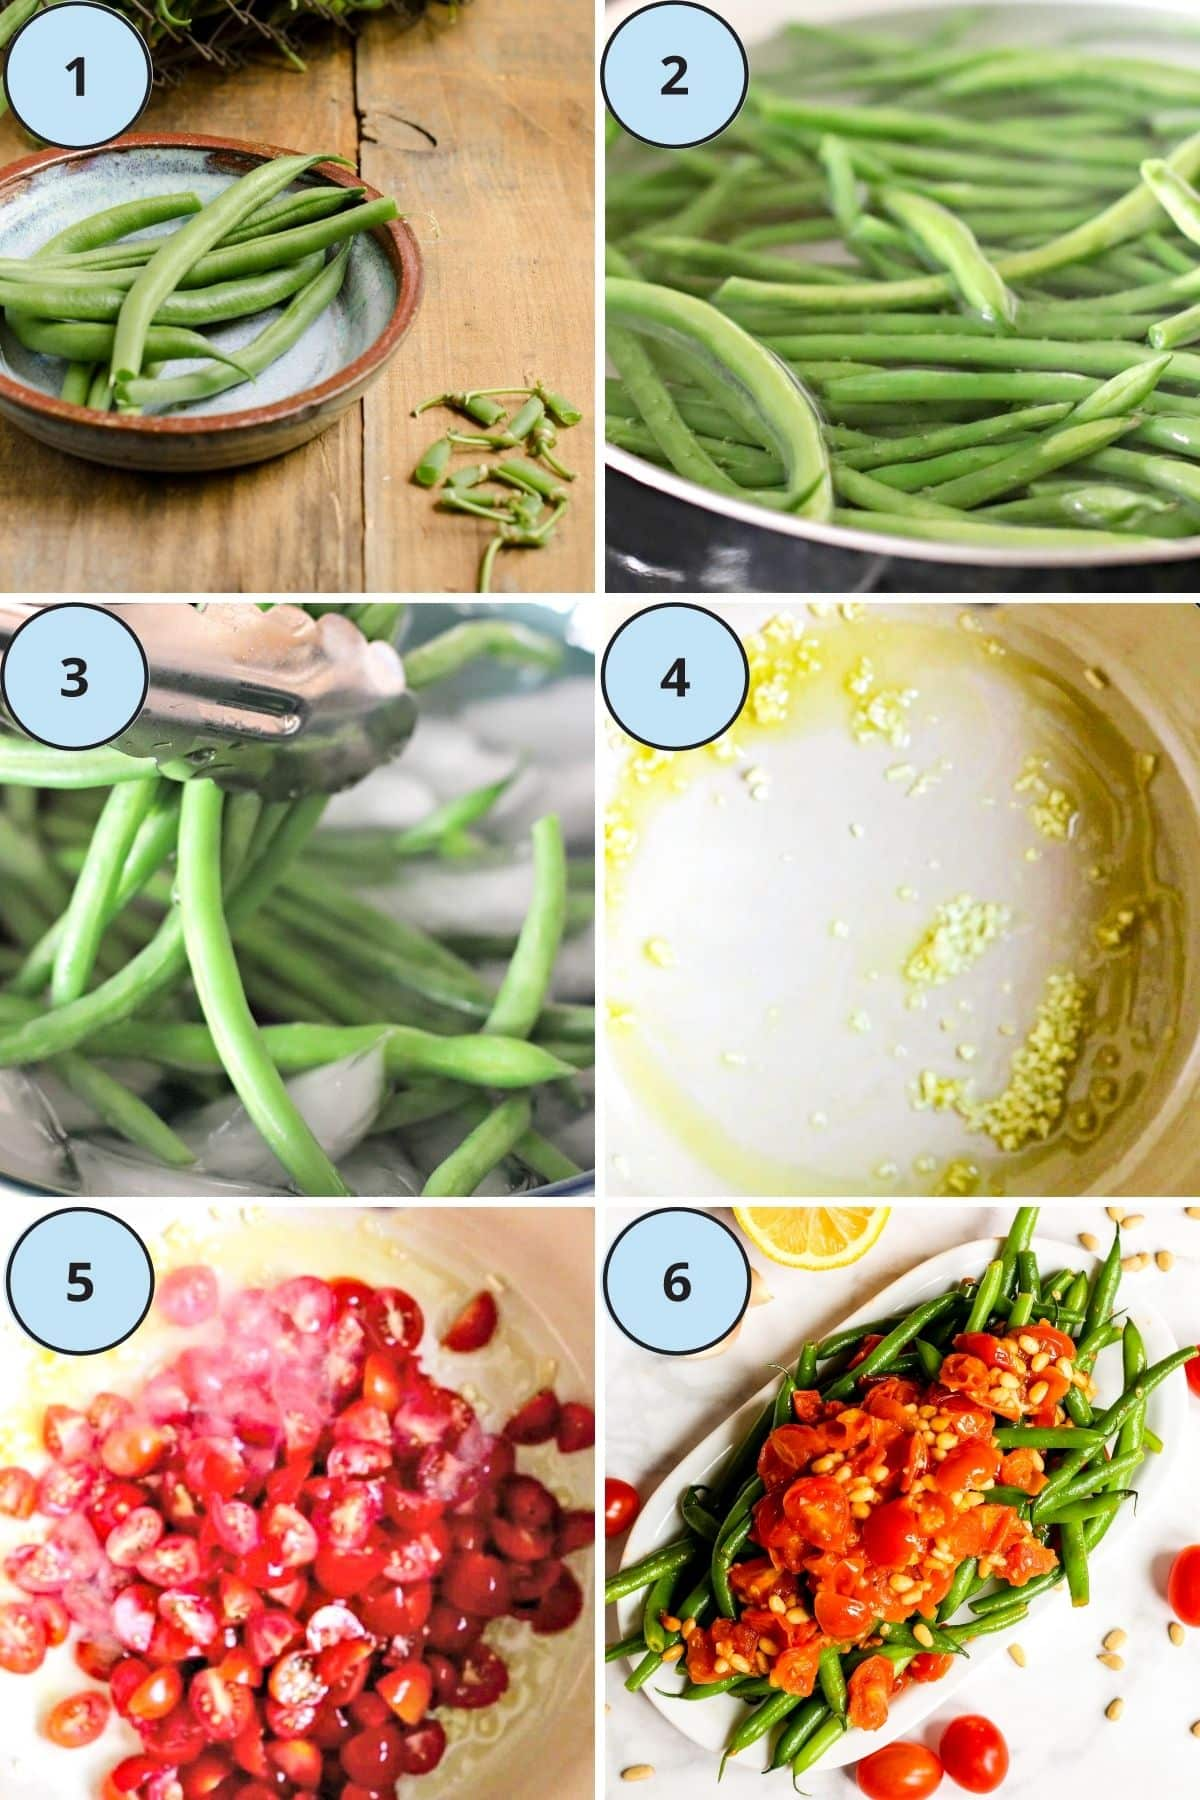 Collage of 6 images showing the steps to make this recipe